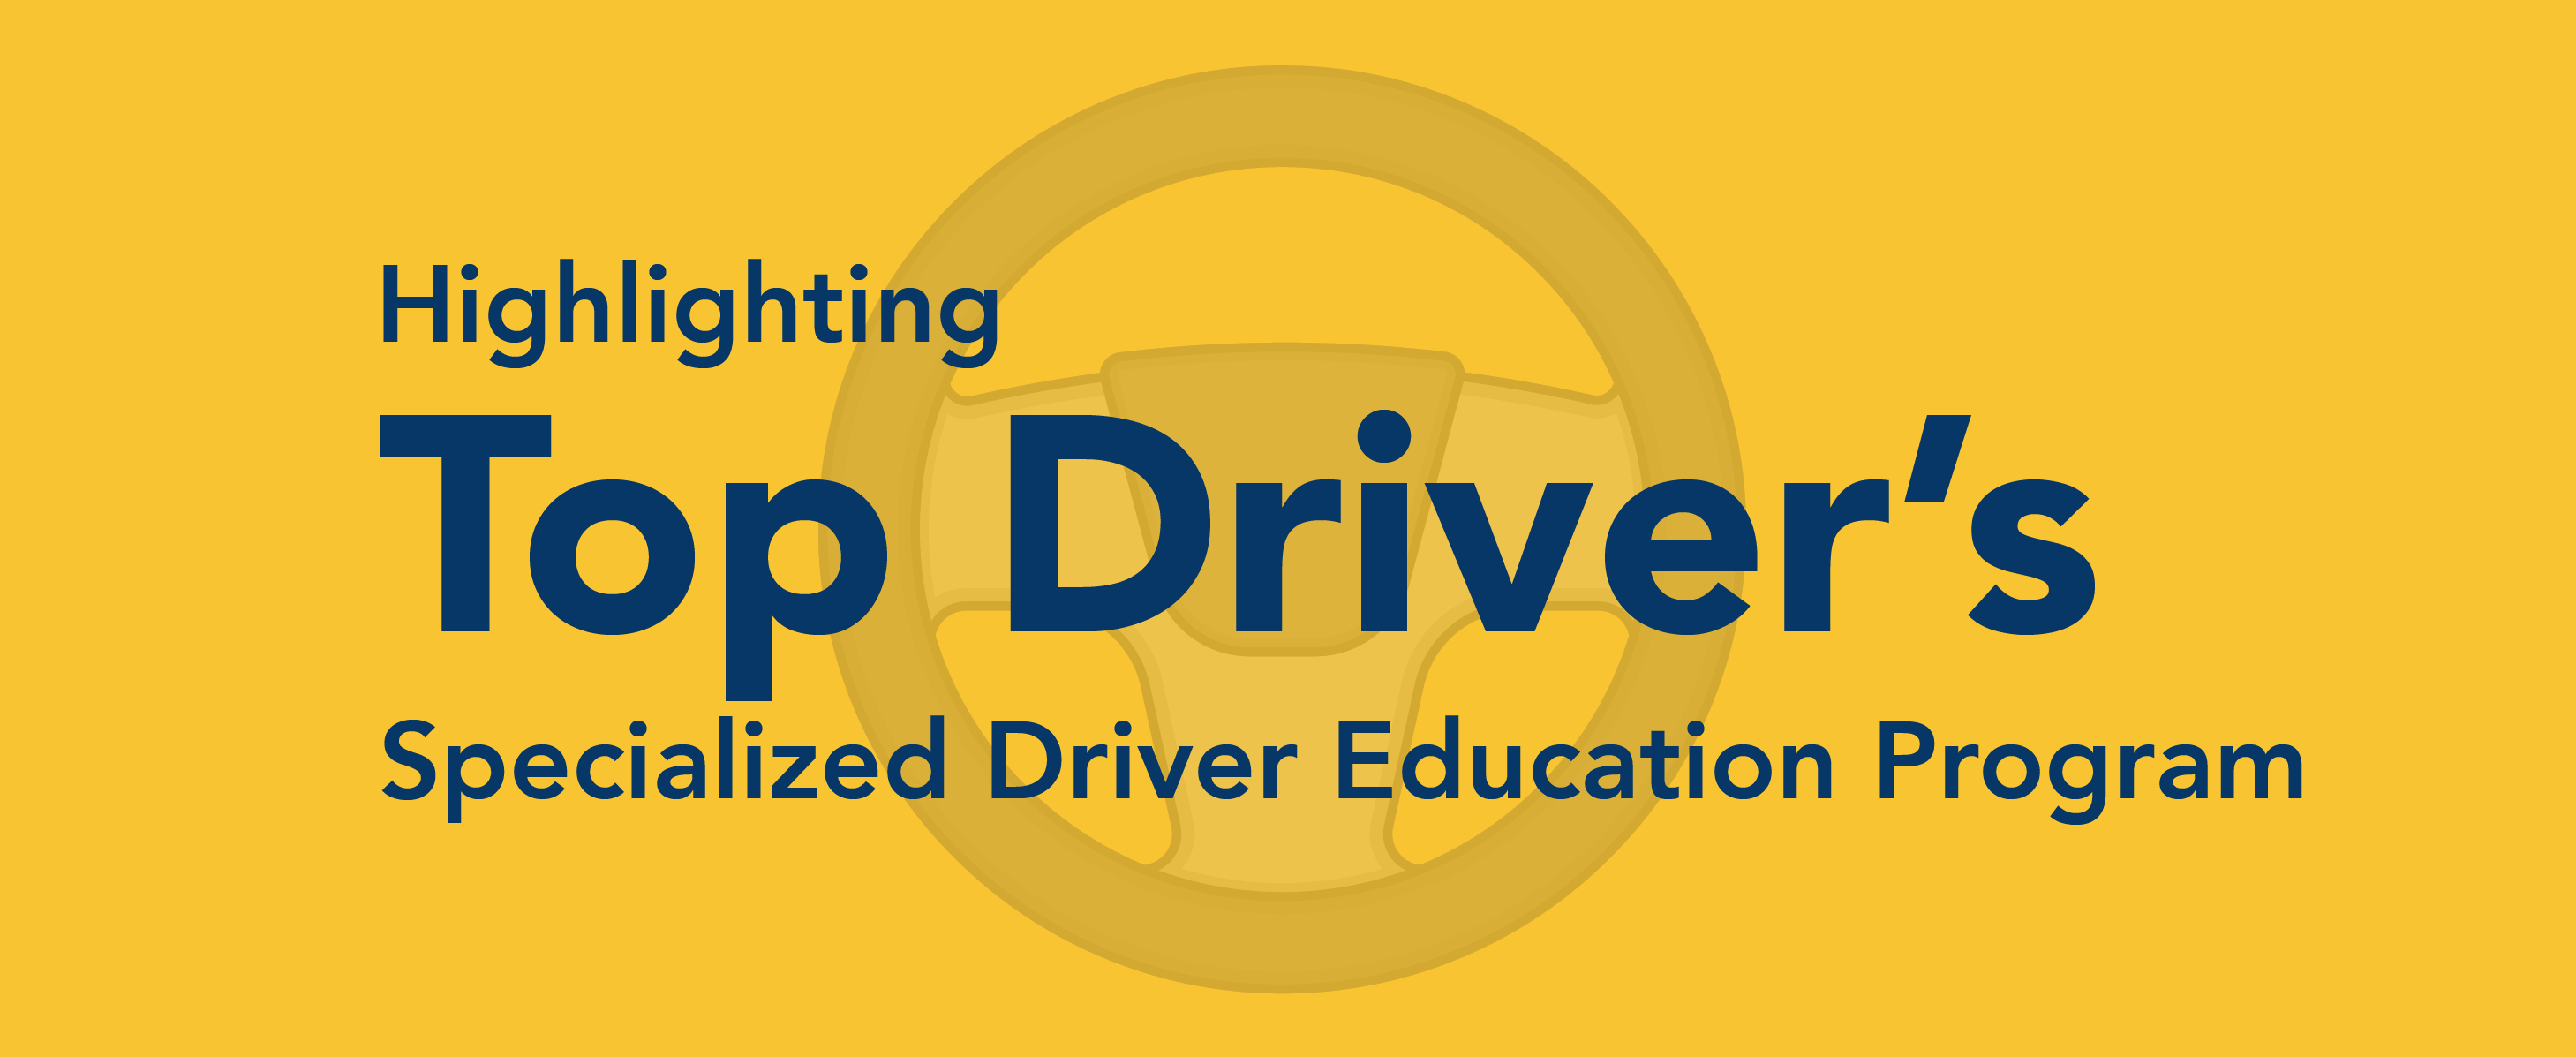 Highlighting Top Driver's specialized driver education program.